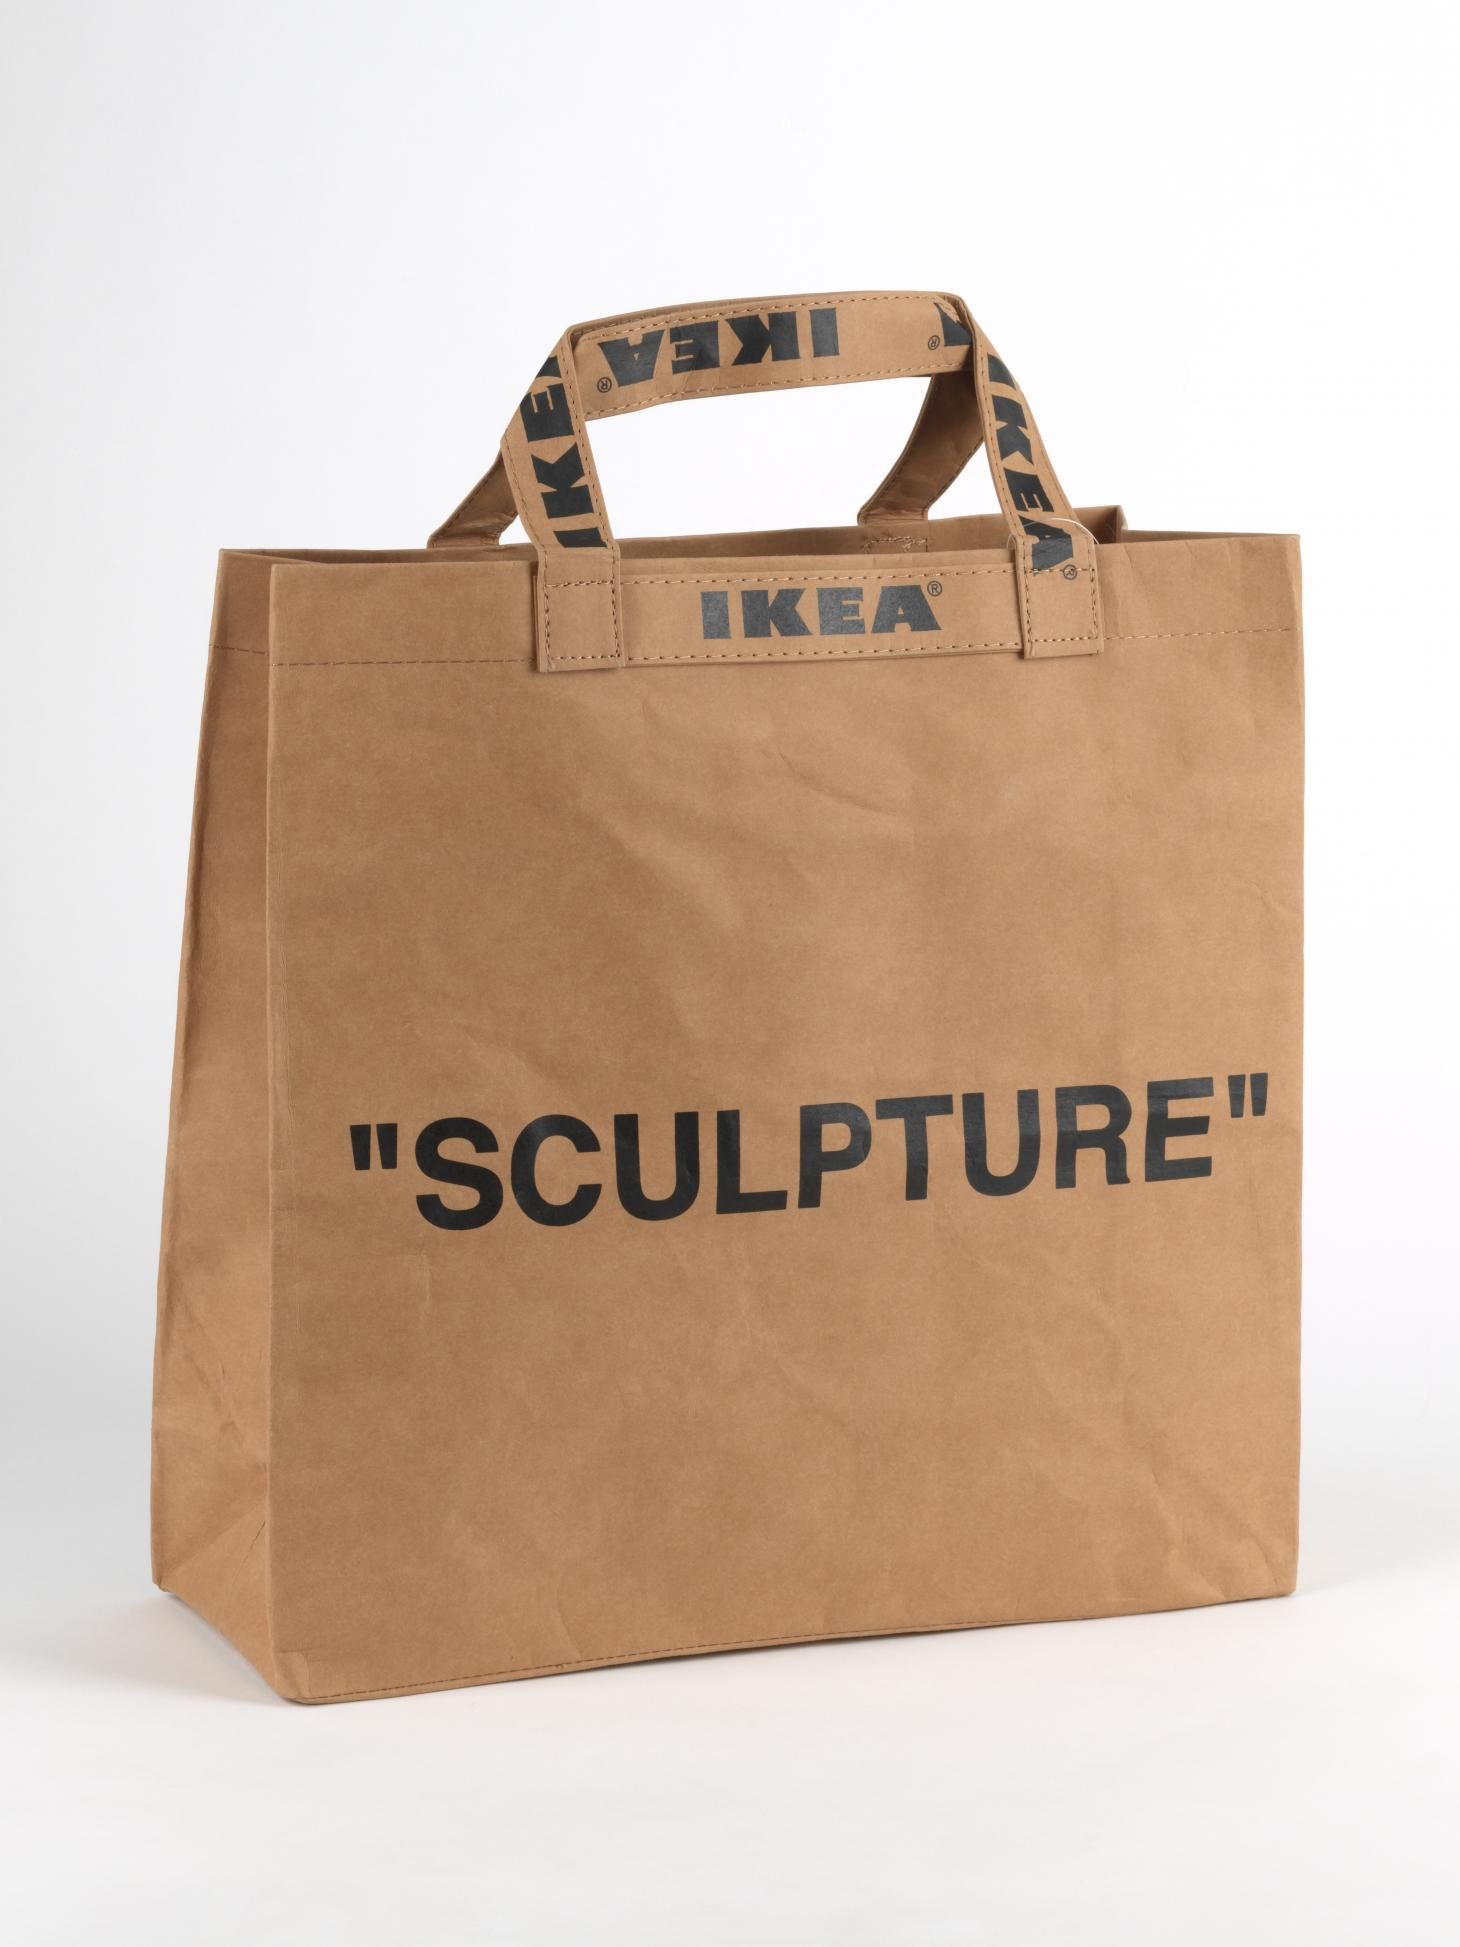 """A brown paper bag that says IKEA on the handles and """"sculpture"""" in black type on the front, created by Virgil Abloh"""